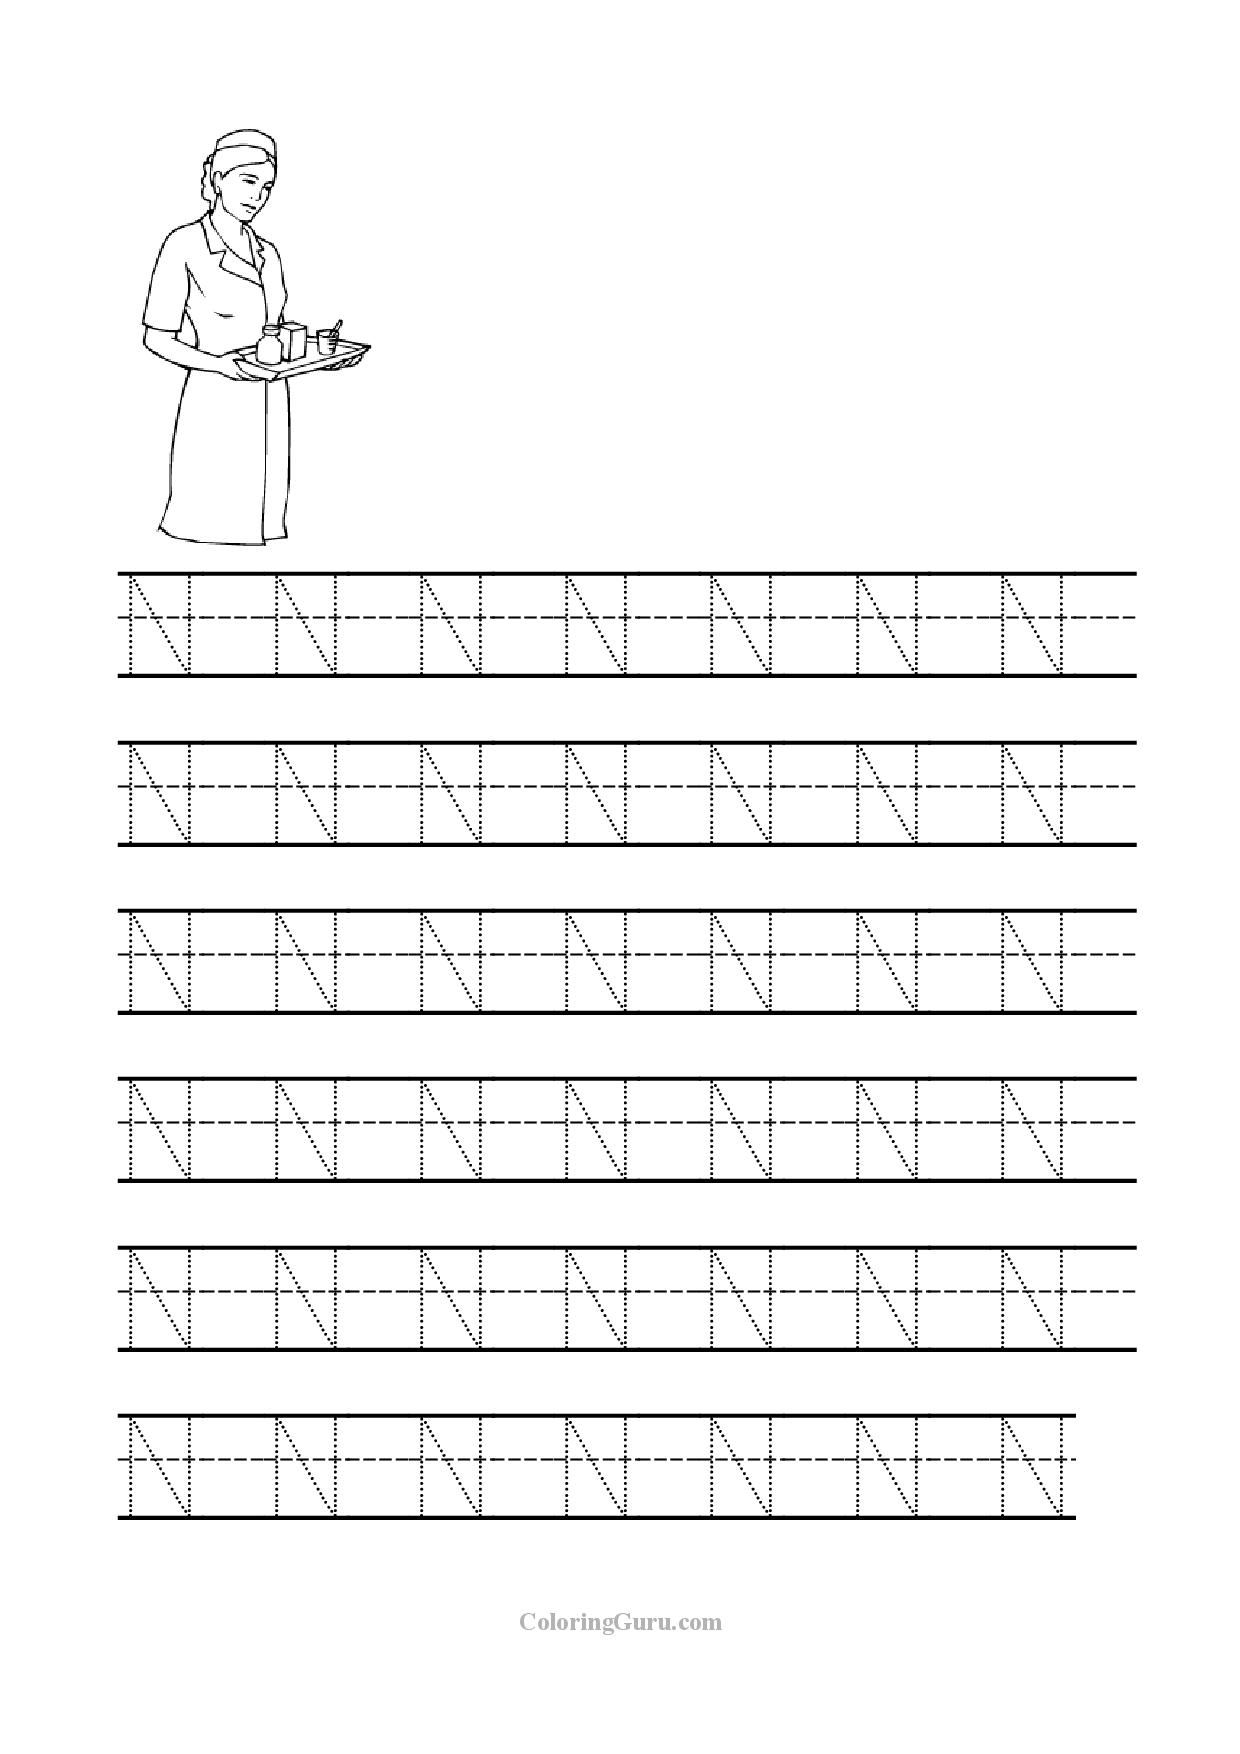 Printable Preschool Worksheets Letter N